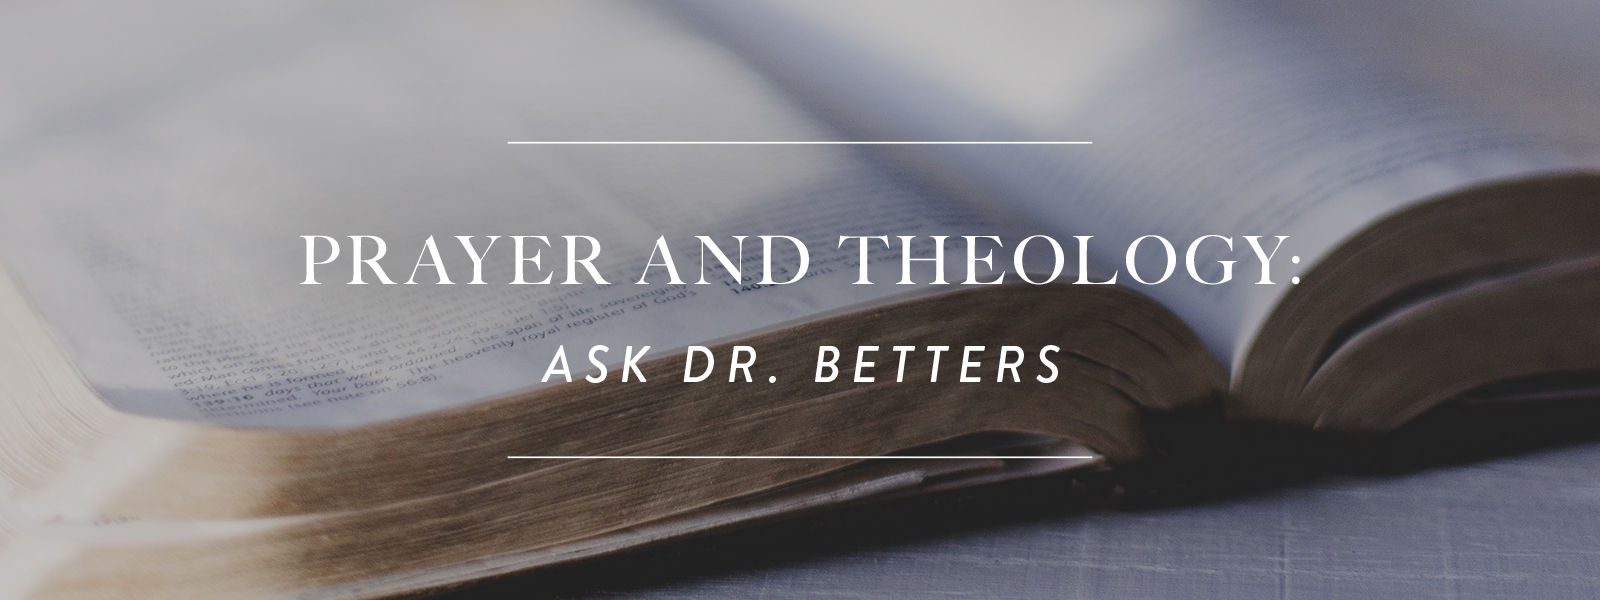 Prayer & Theology: Ask Dr. Betters